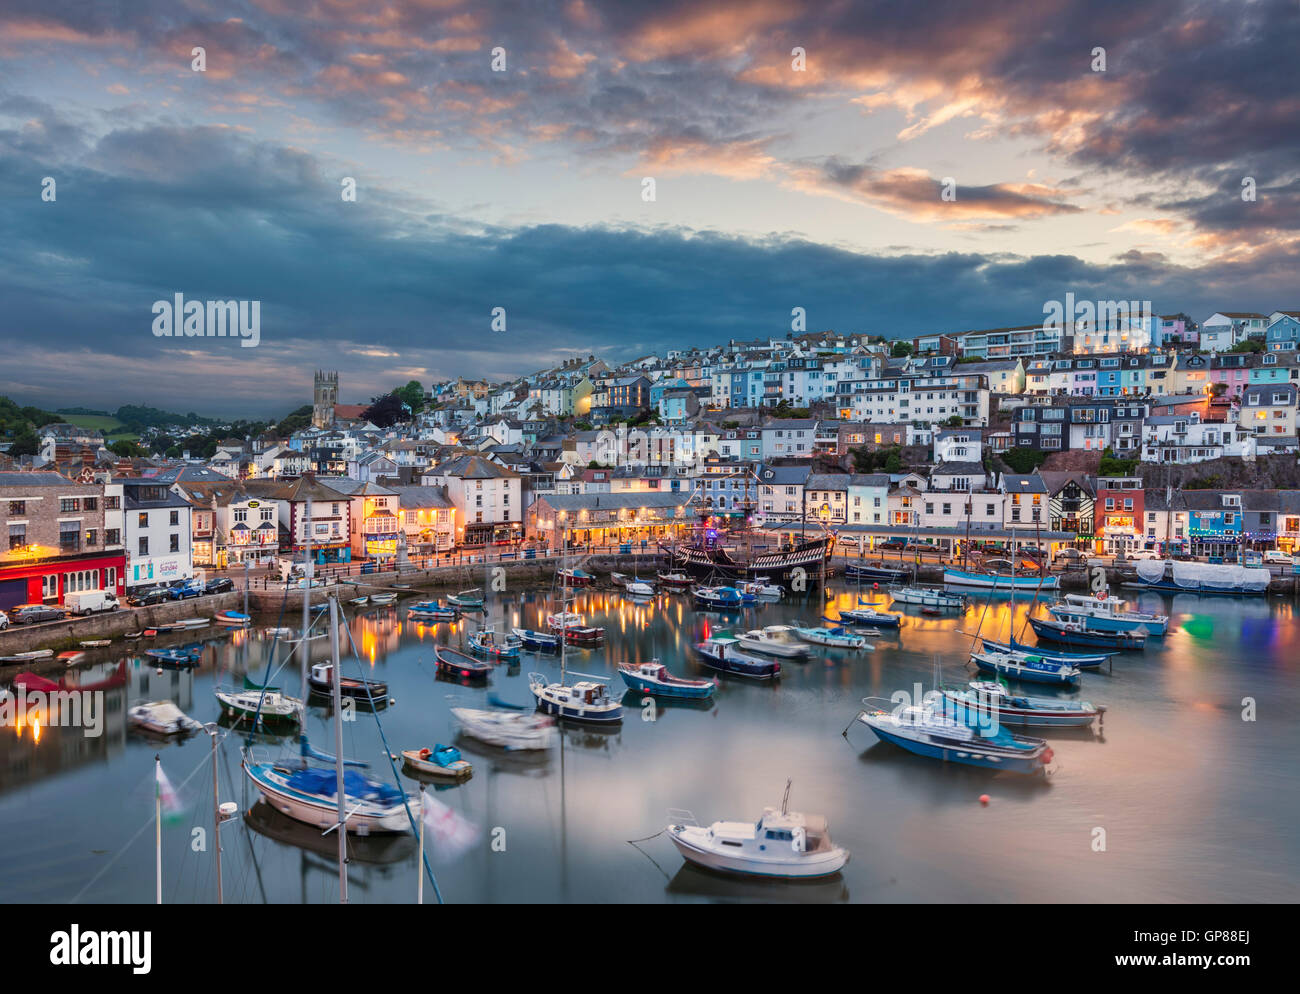 Brixham Harbour at sunset Brixham Devon England UK GB EU Europe - Stock Image